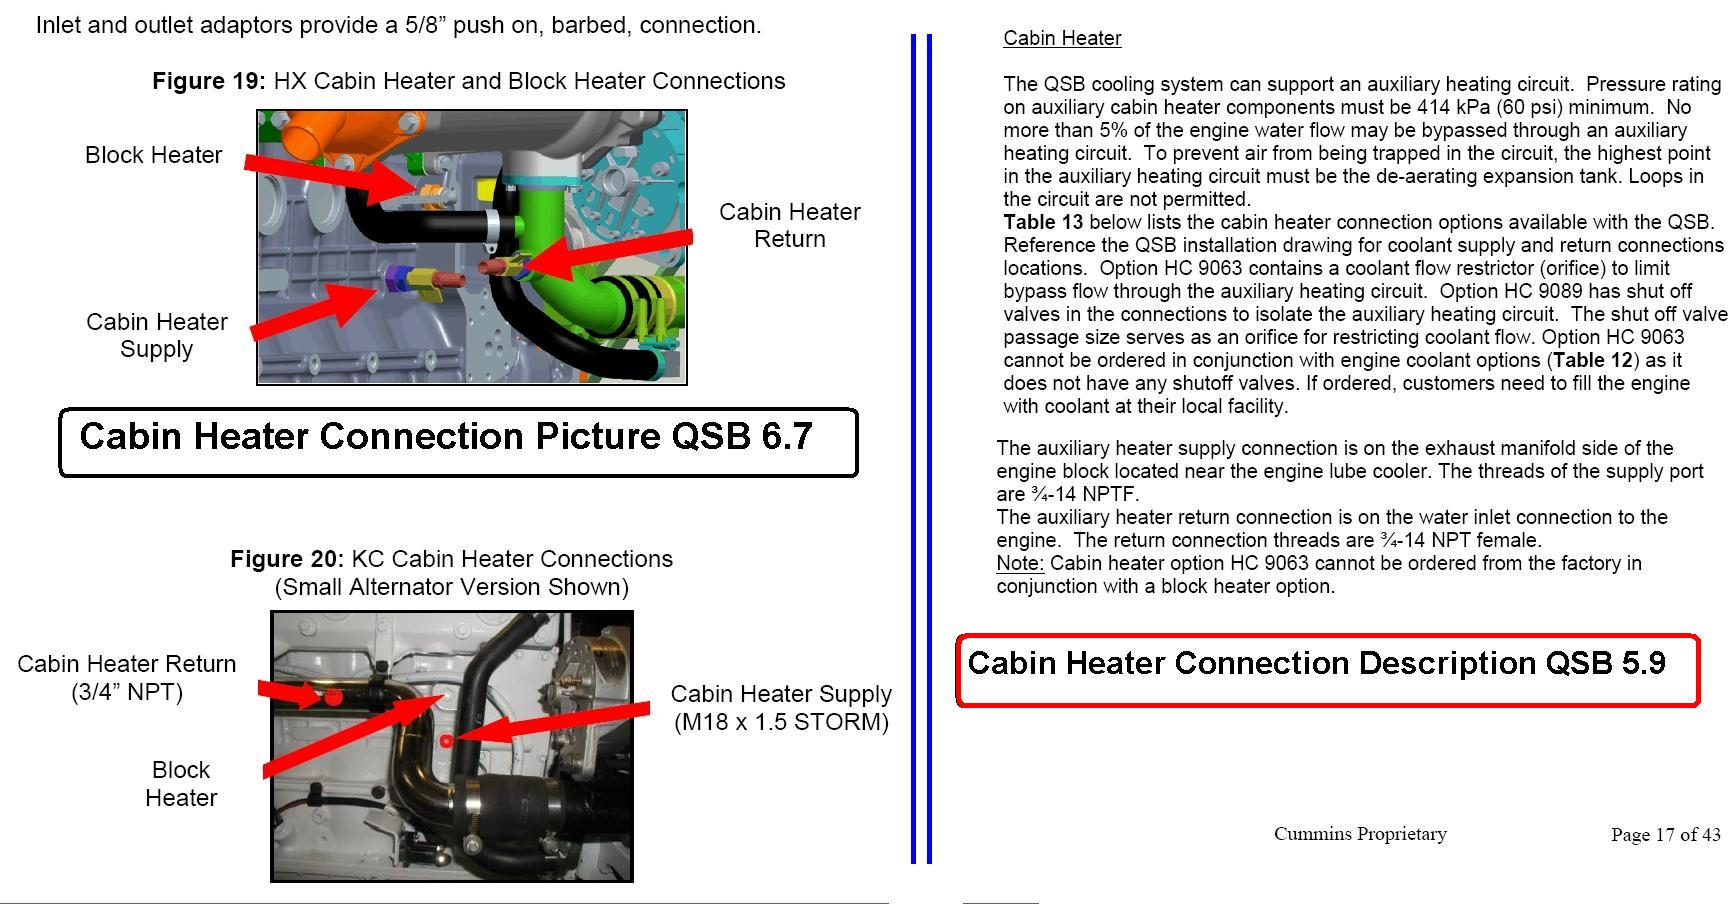 hight resolution of cabin heater connection ports for qsb 6 7 qsb 5 9 seaboard marine rh sbmar com